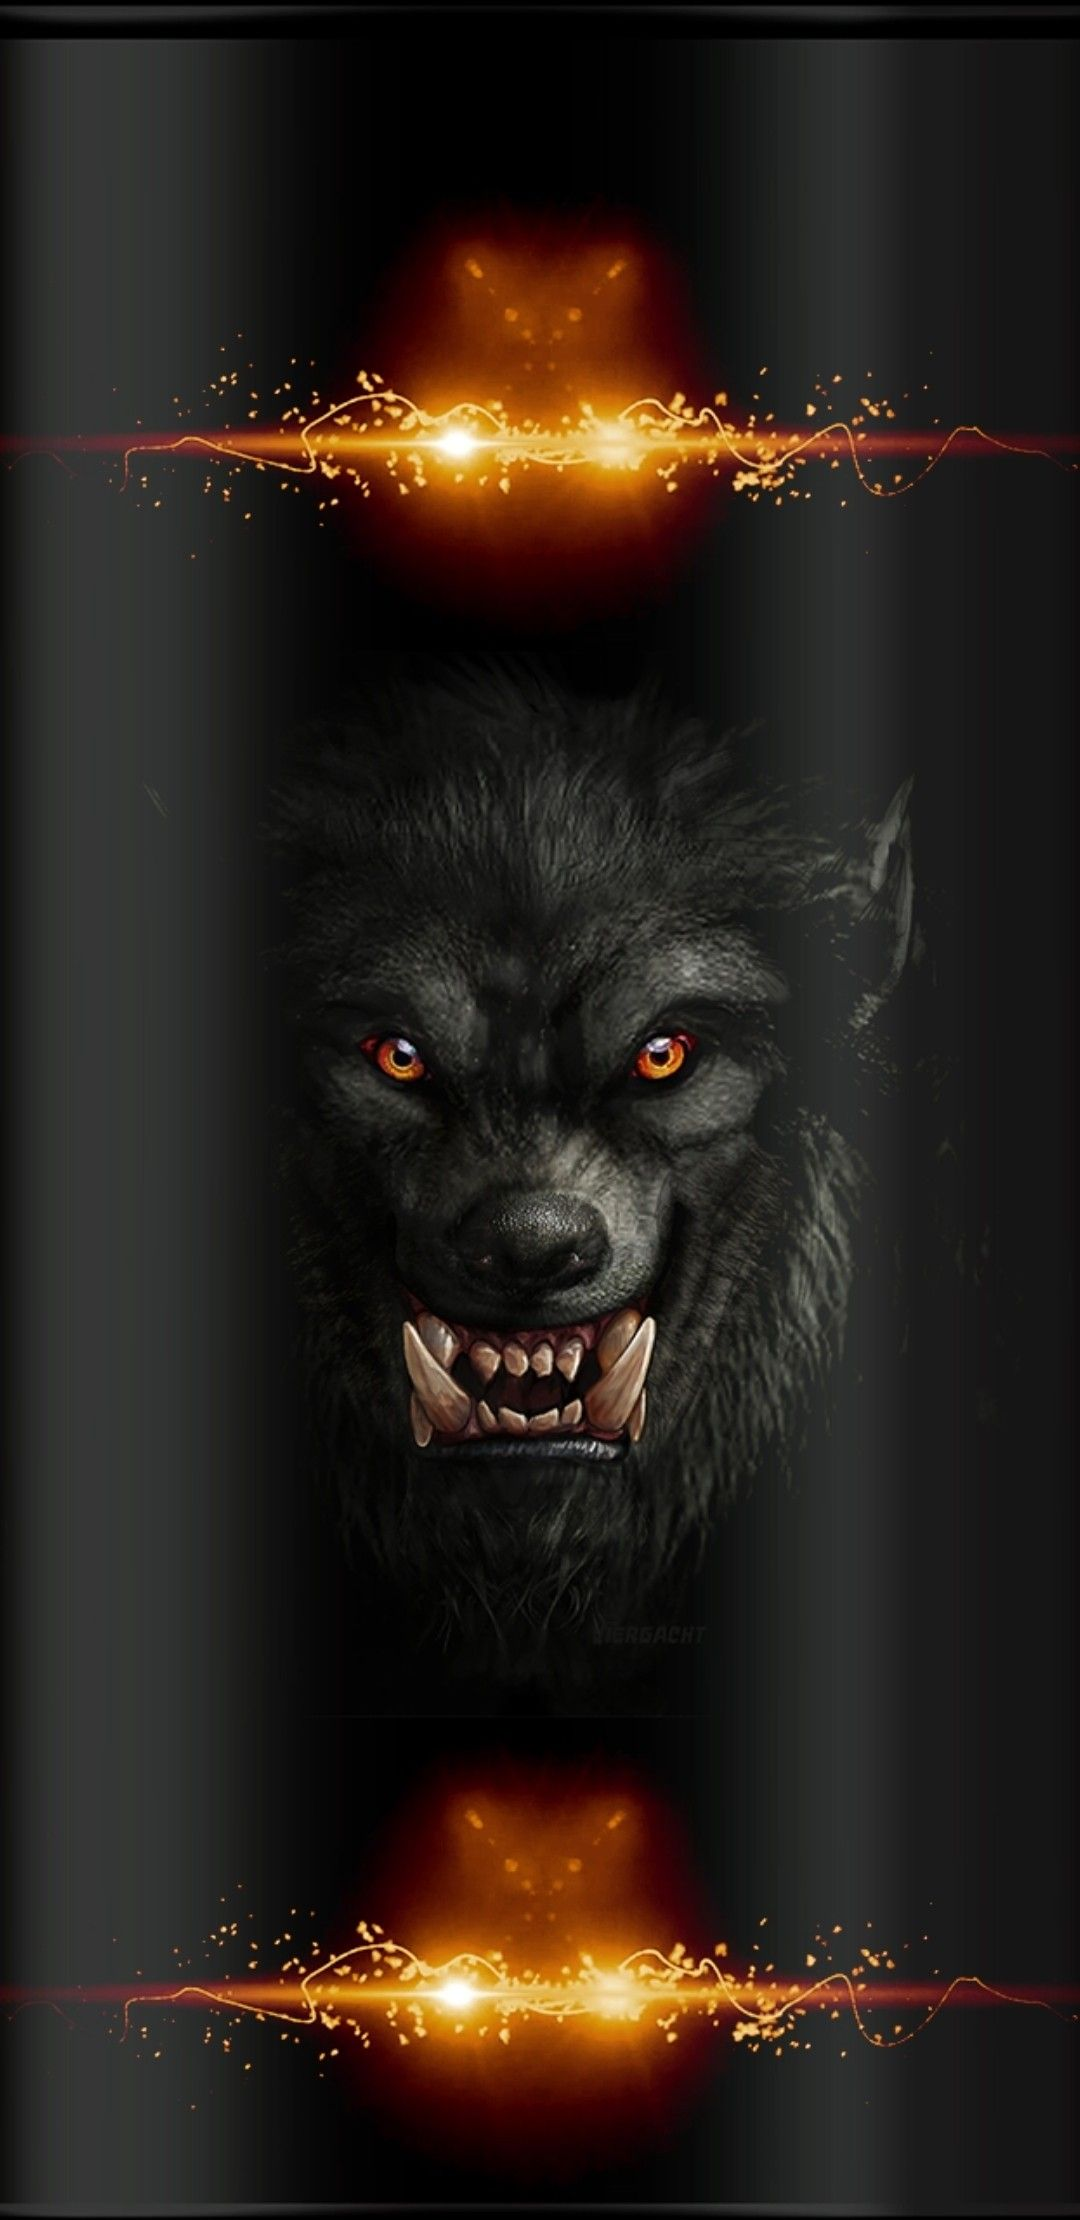 Wolf wallpaper image by Dany on Wallpapers iPhone